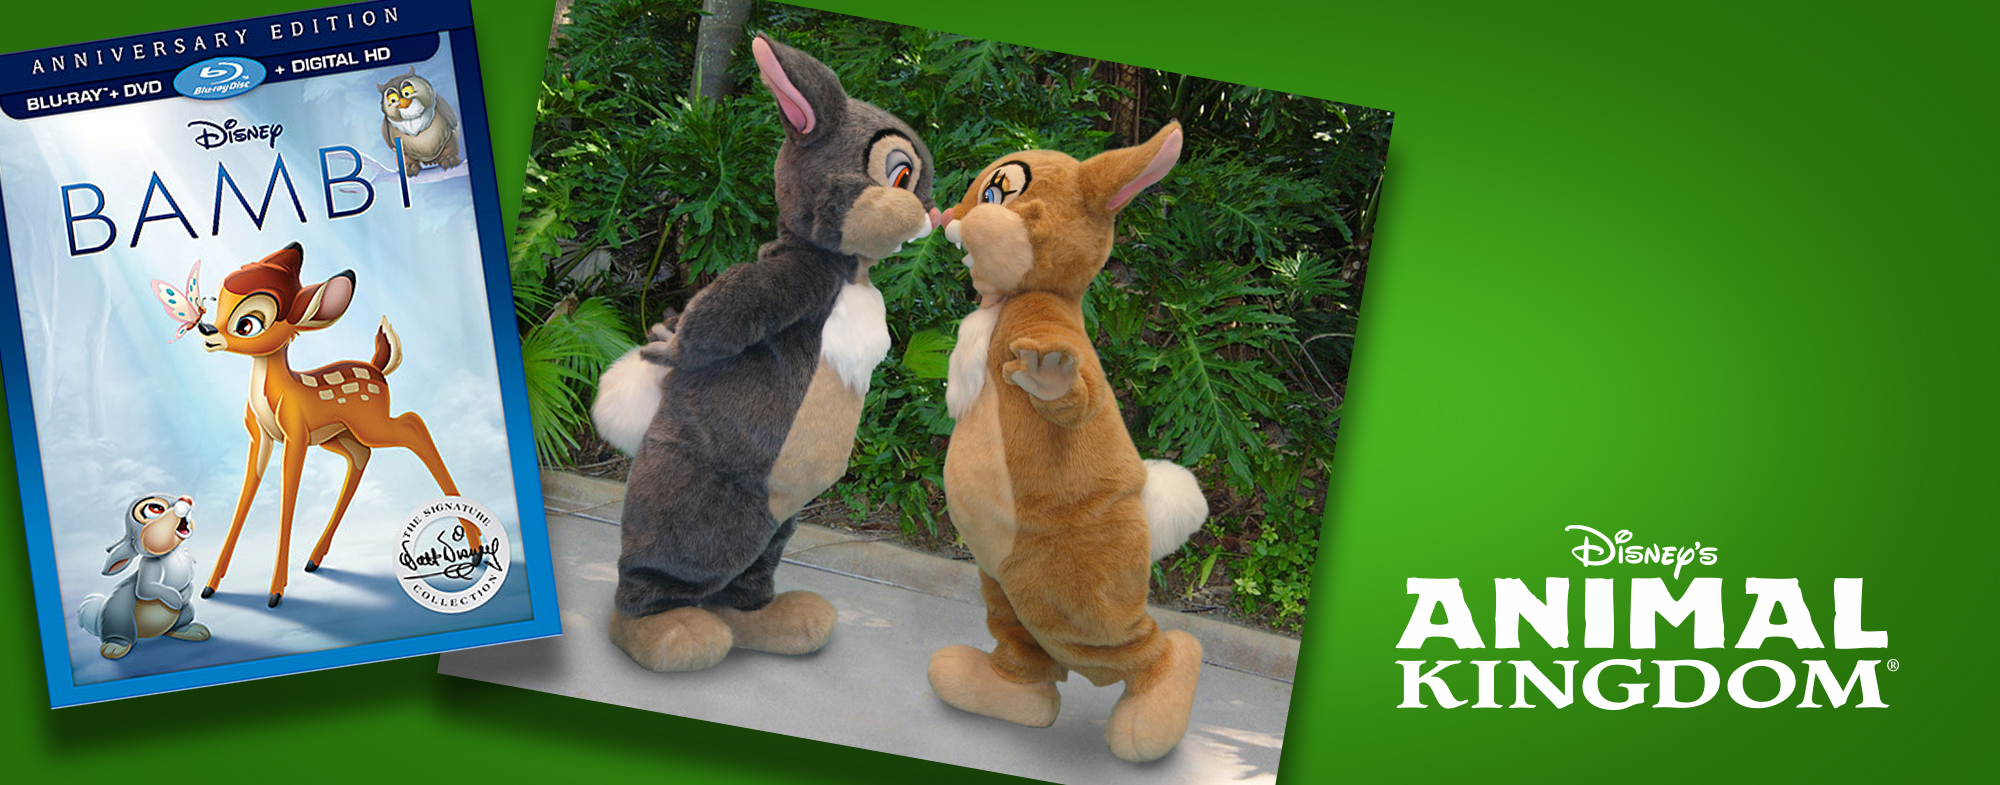 75th Anniversary of 'Bambi' Brings a Special Meet & Greet to the Parks and PhotoPass Exclusives!